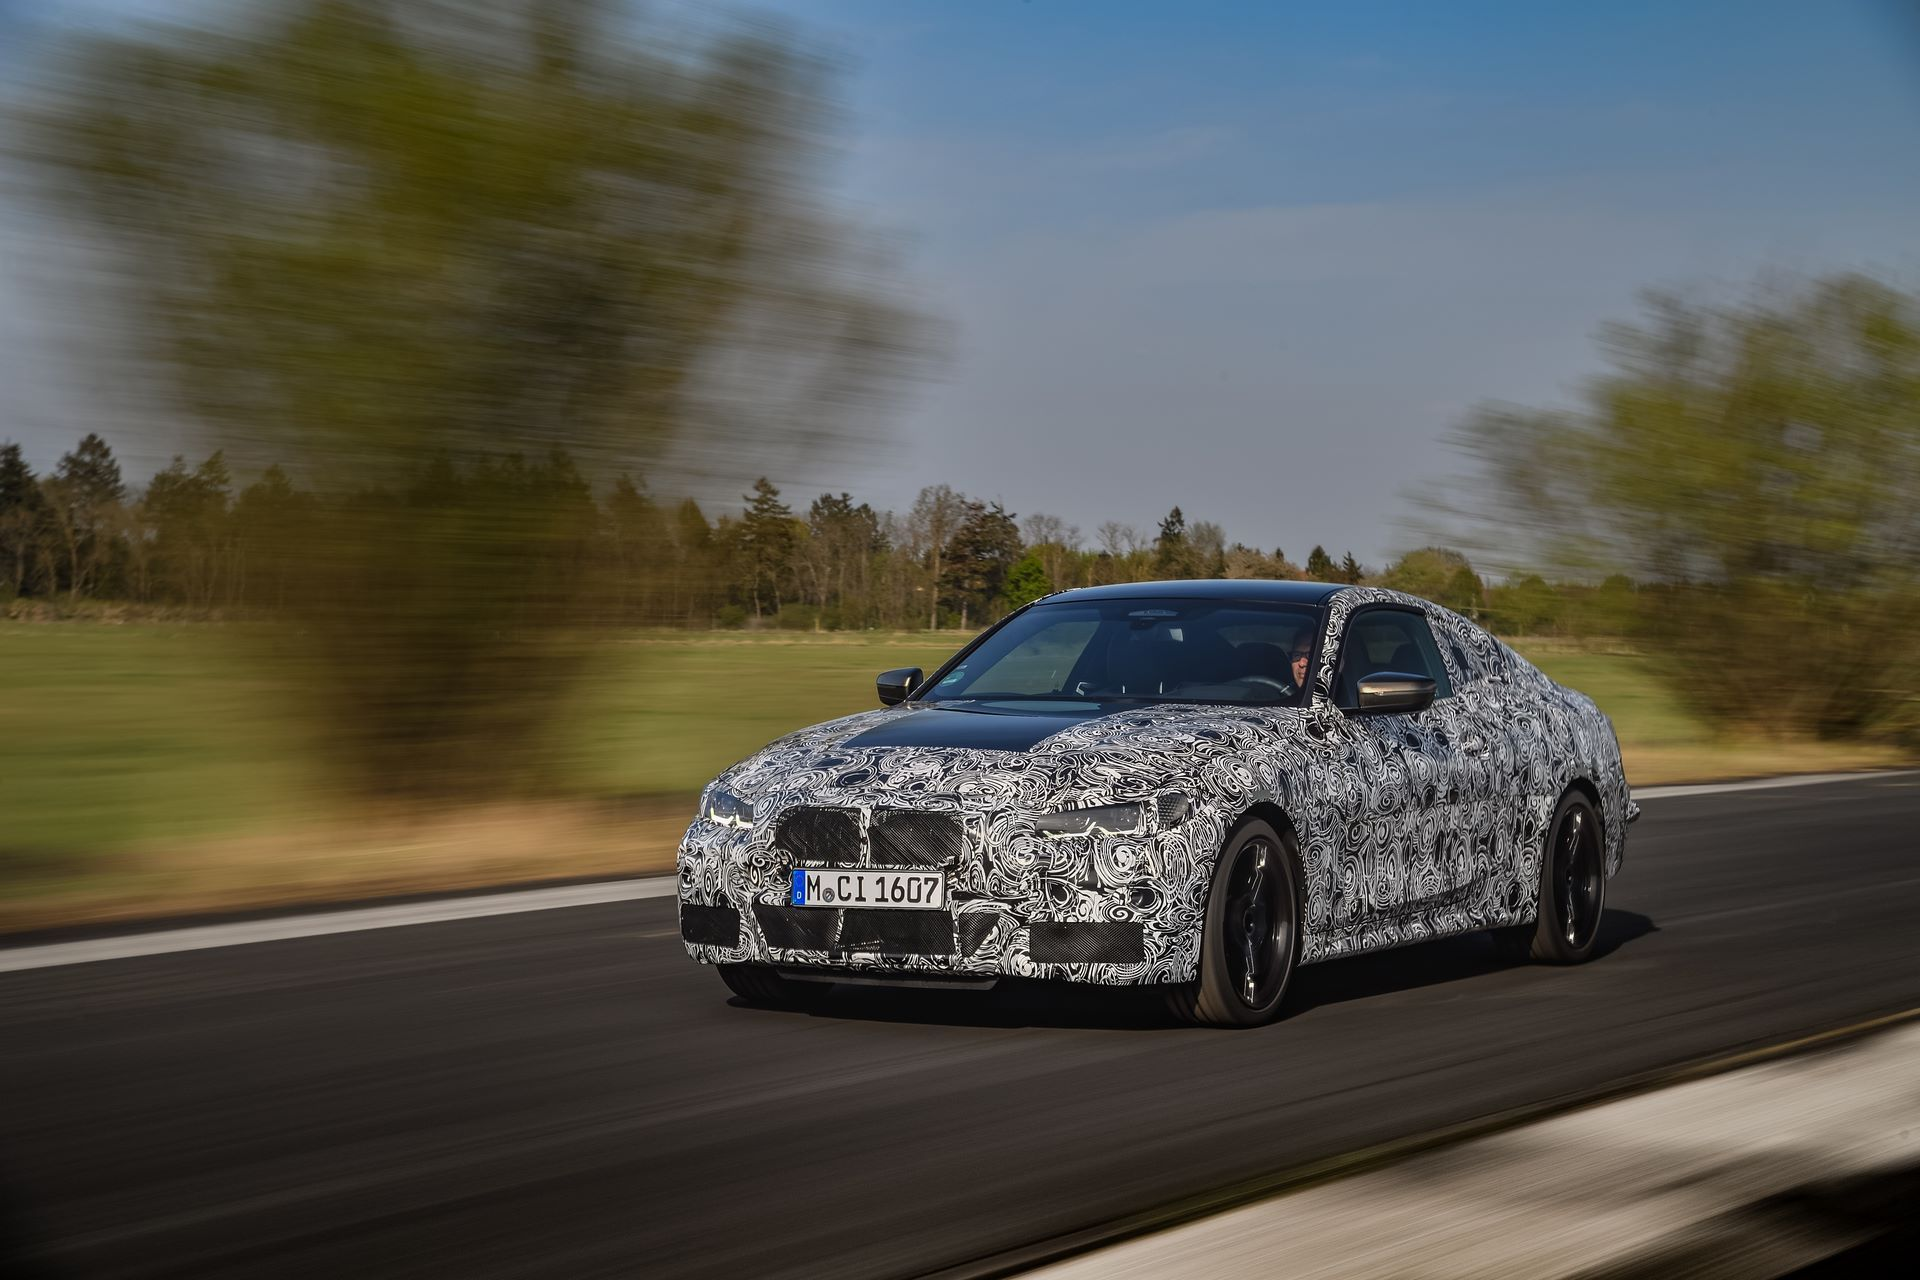 BMW-4-Series-M440i-camouflaged-14